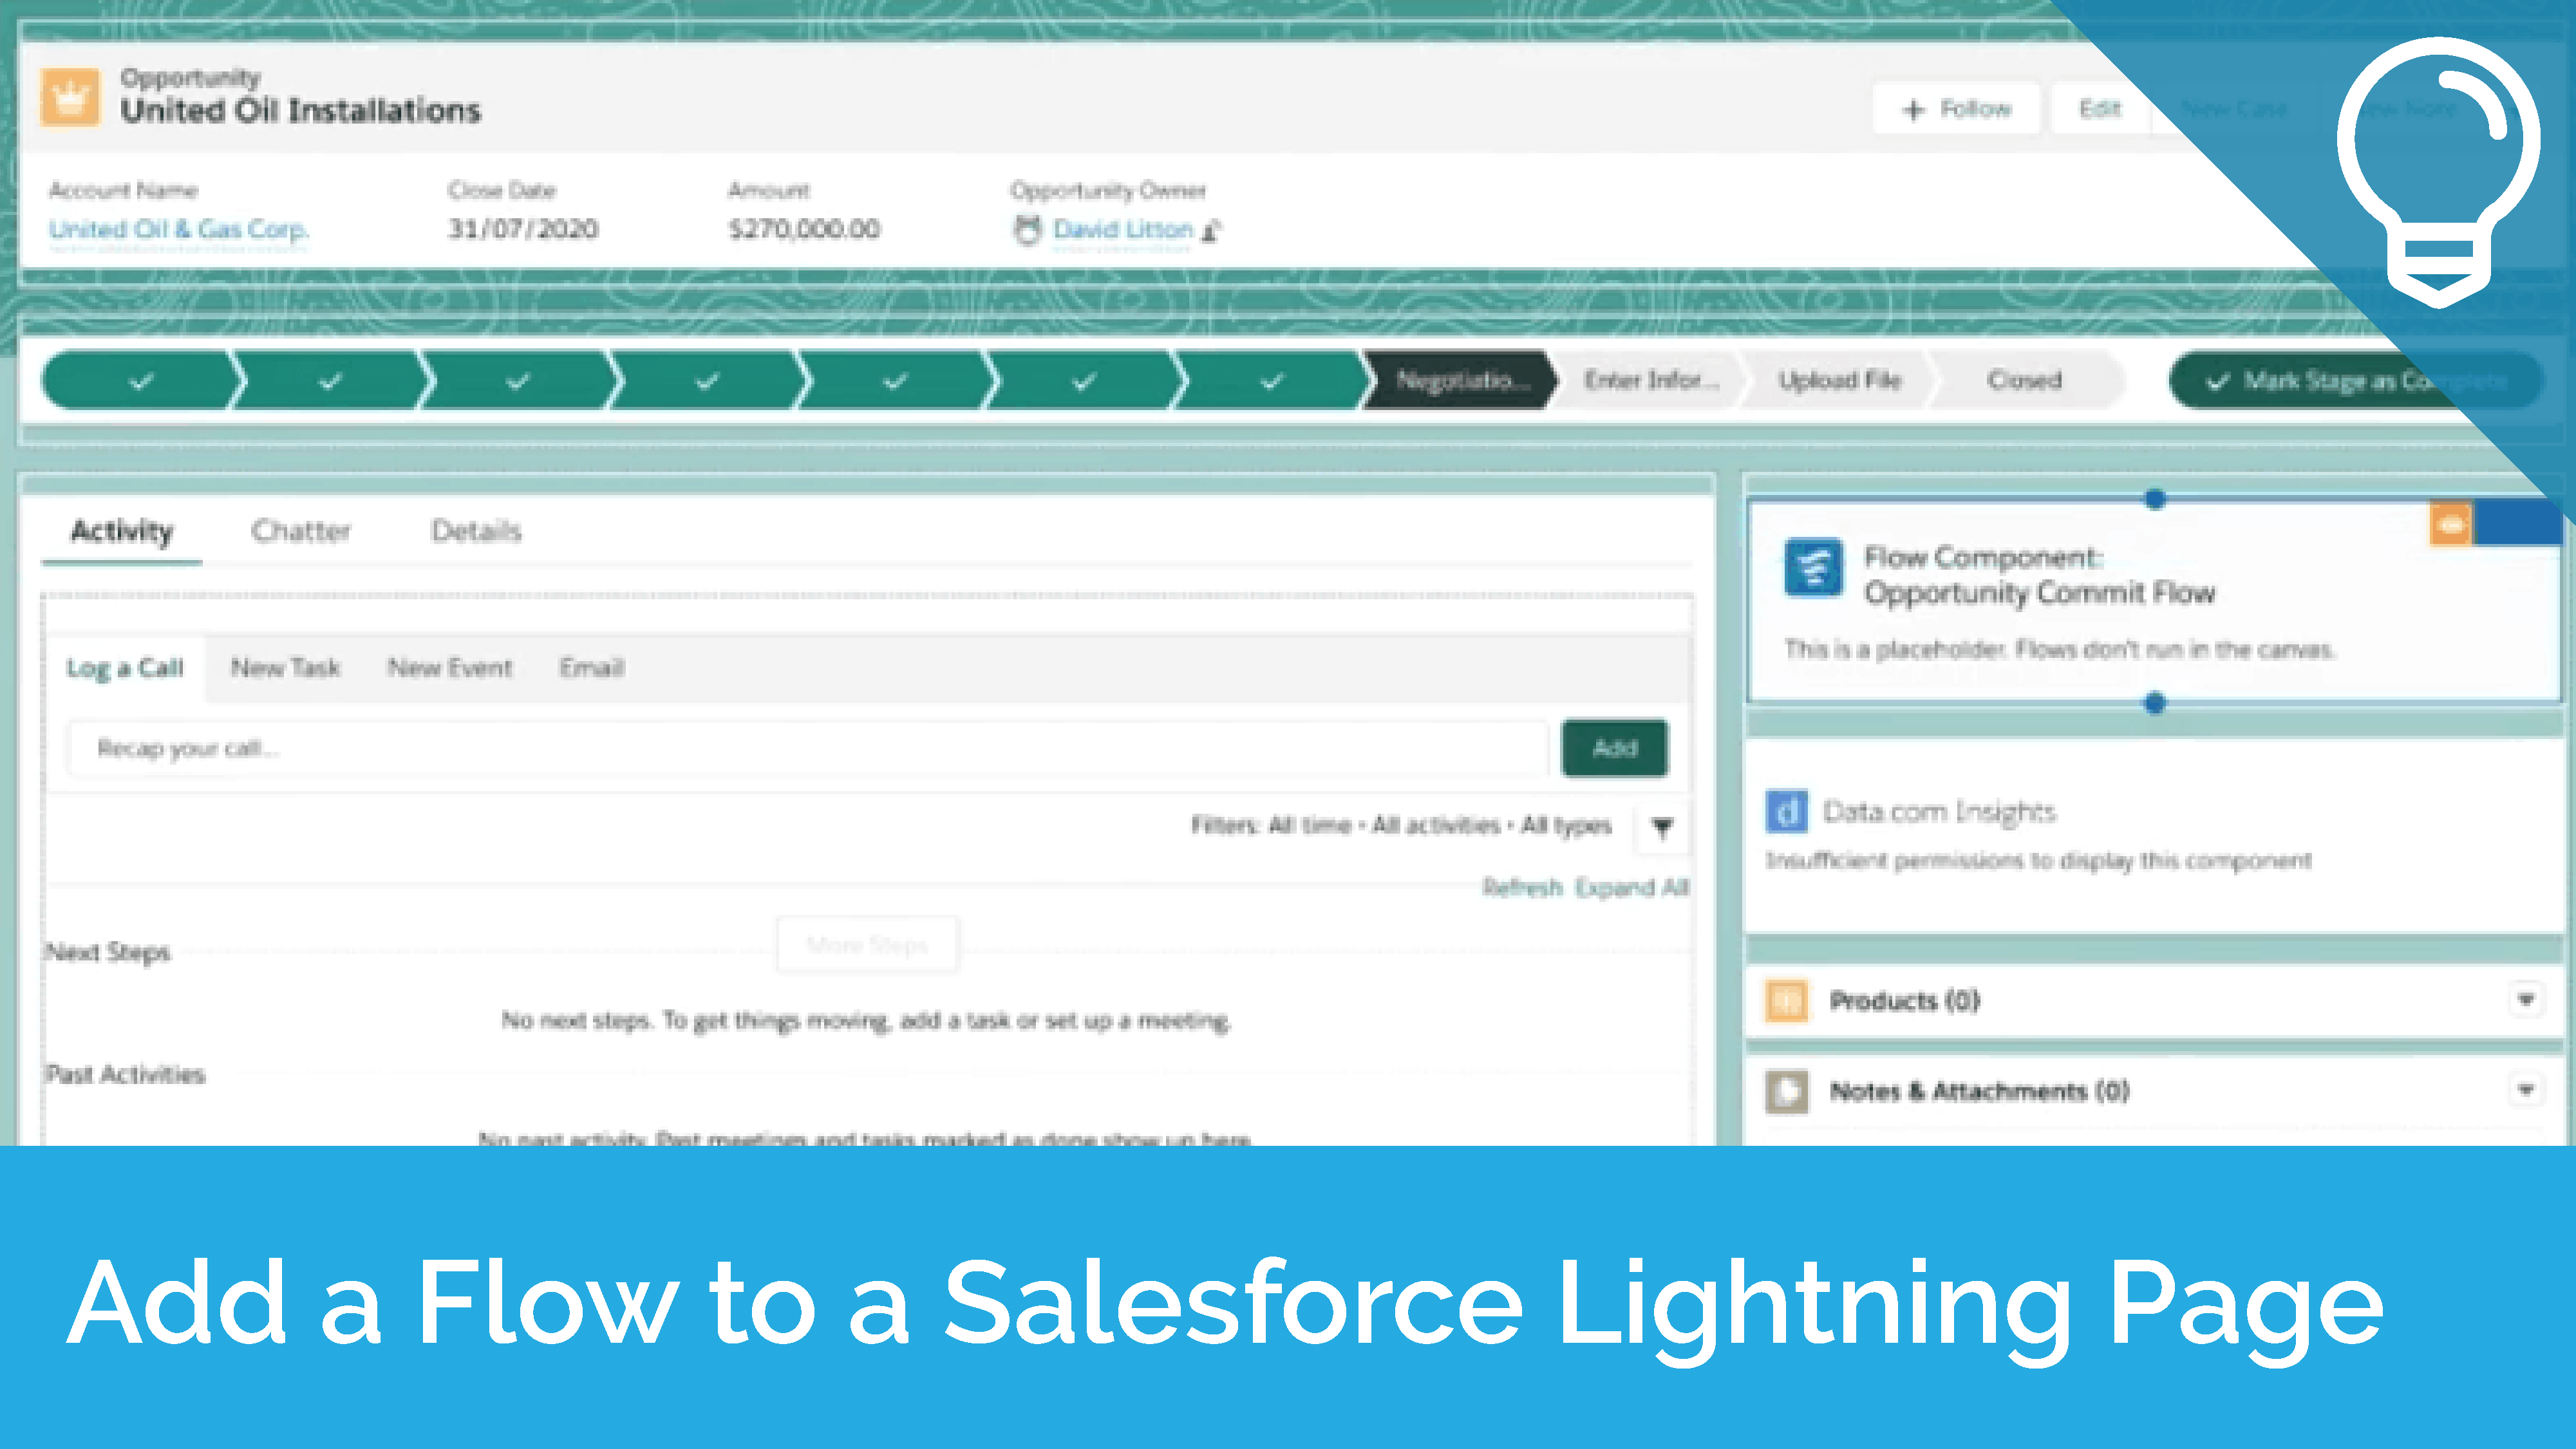 Add a Flow to a Salesforce Lightning Page